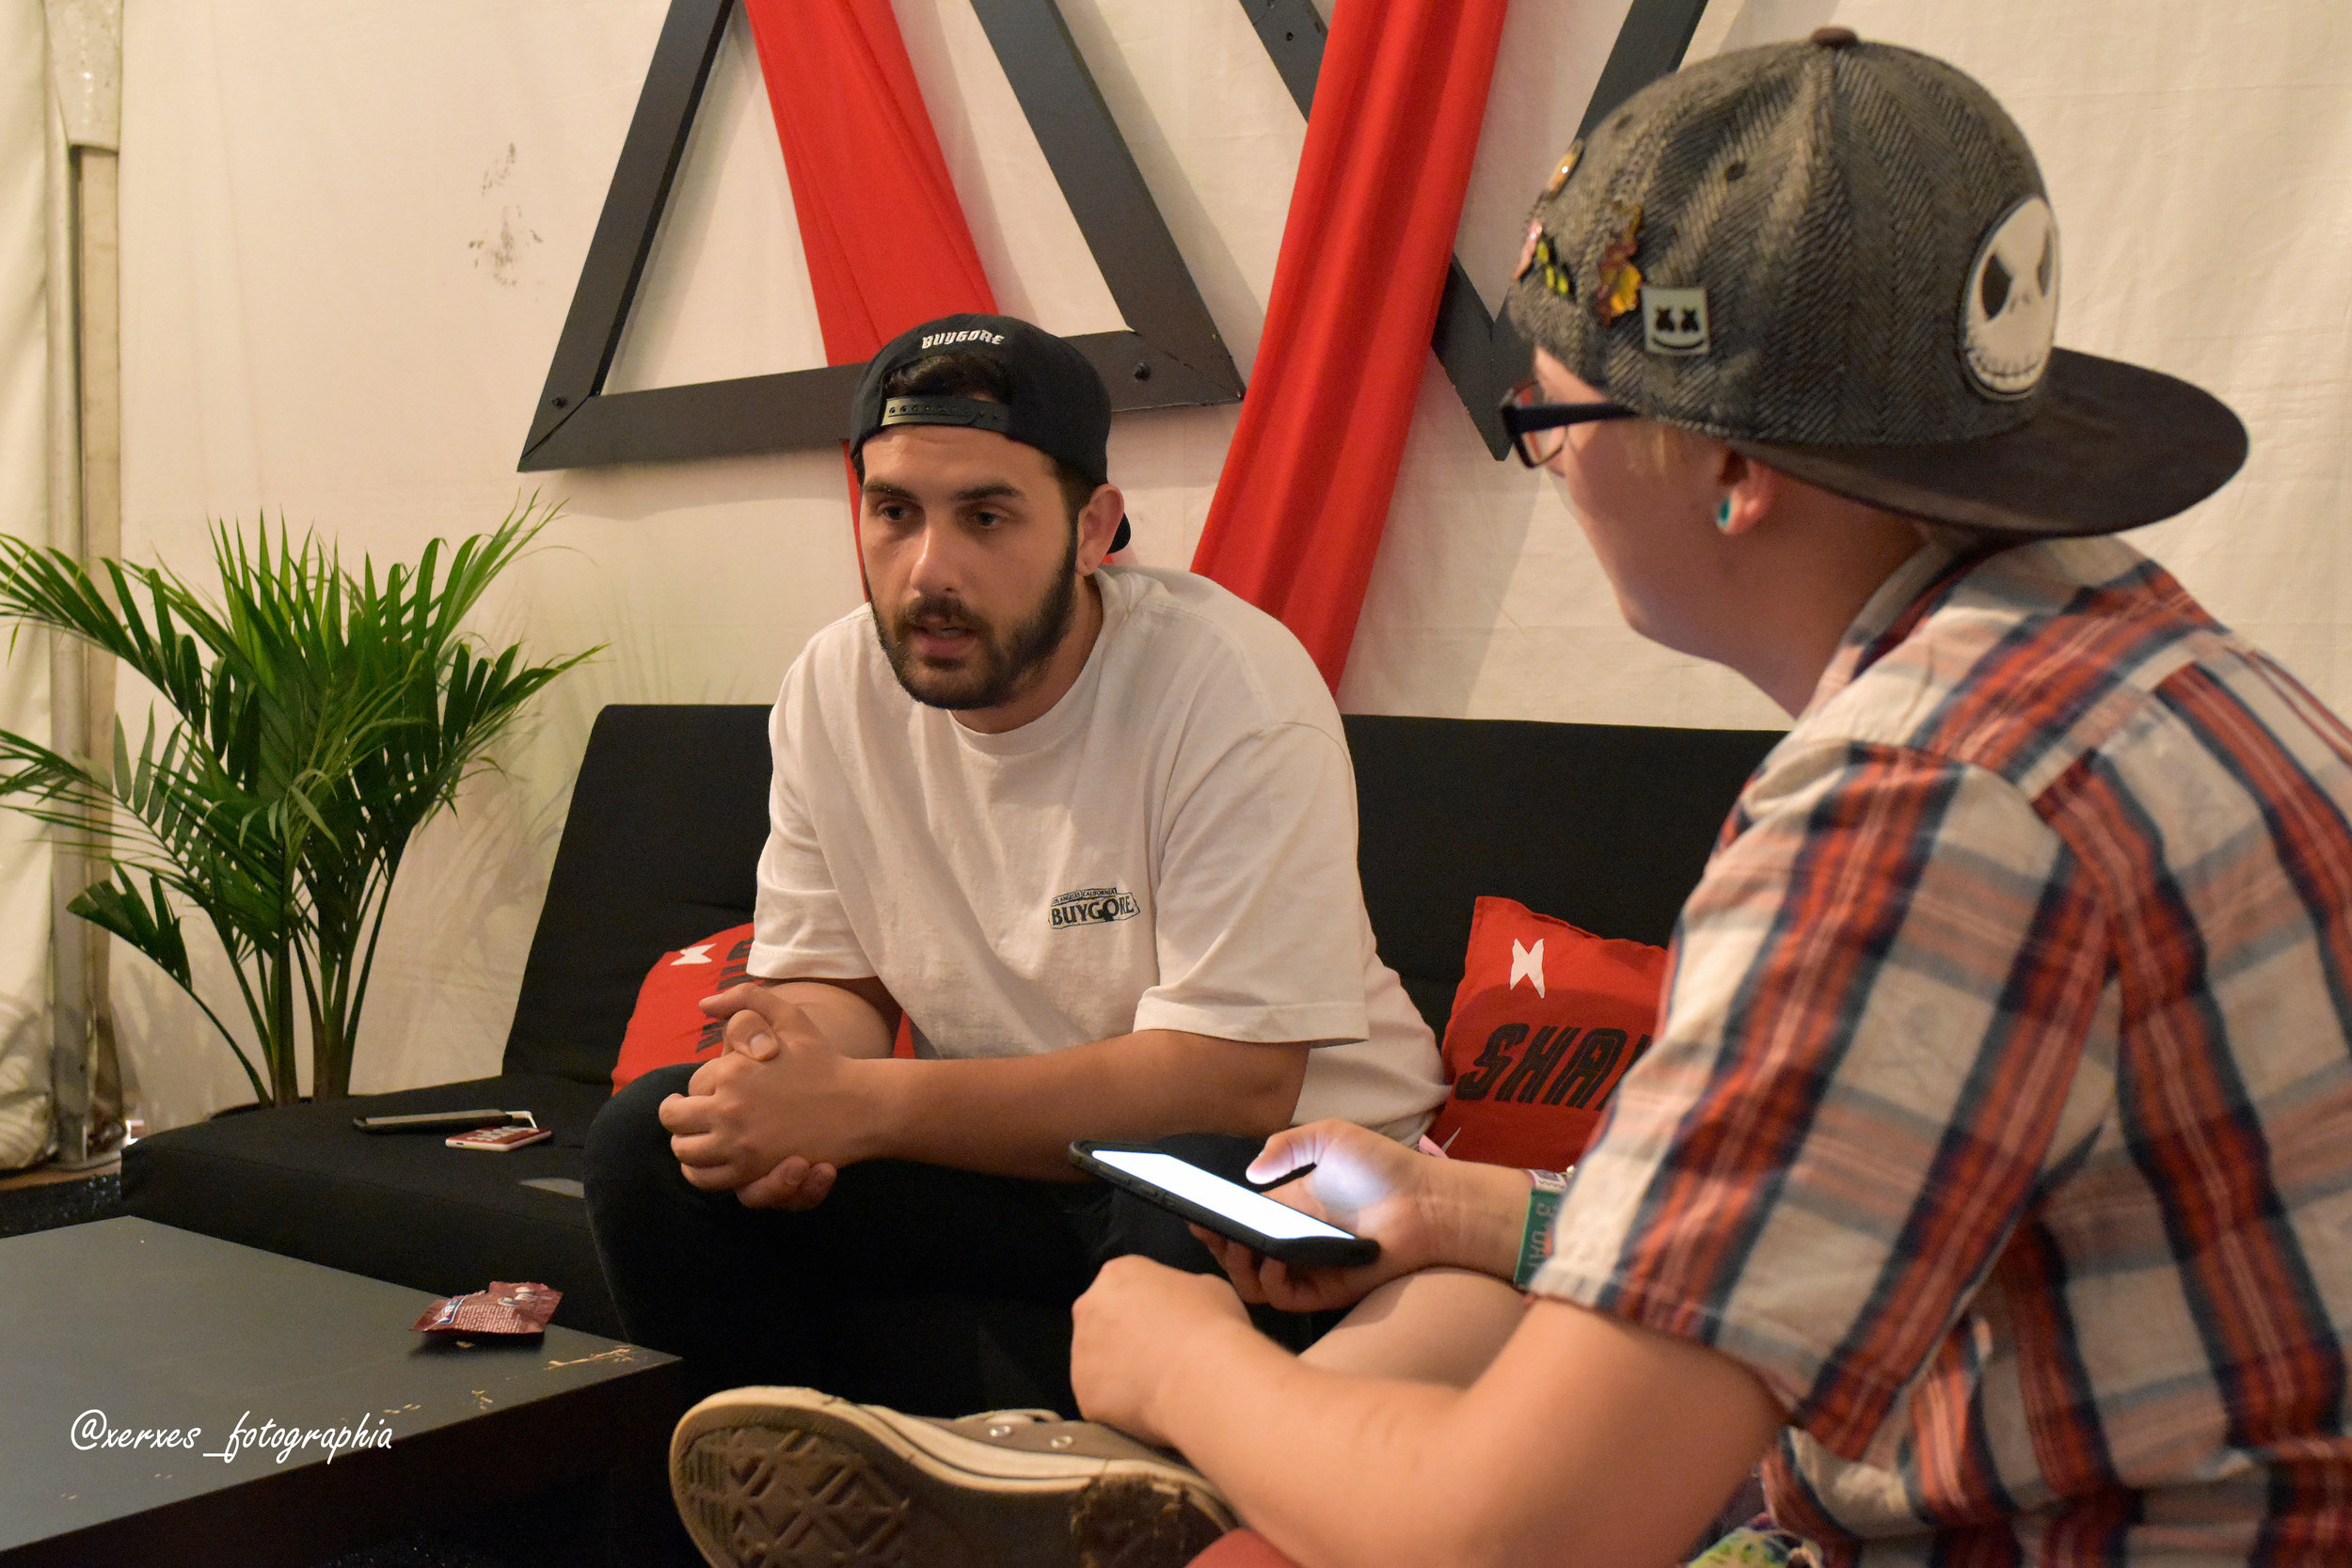 Kade's interview with Borgore!